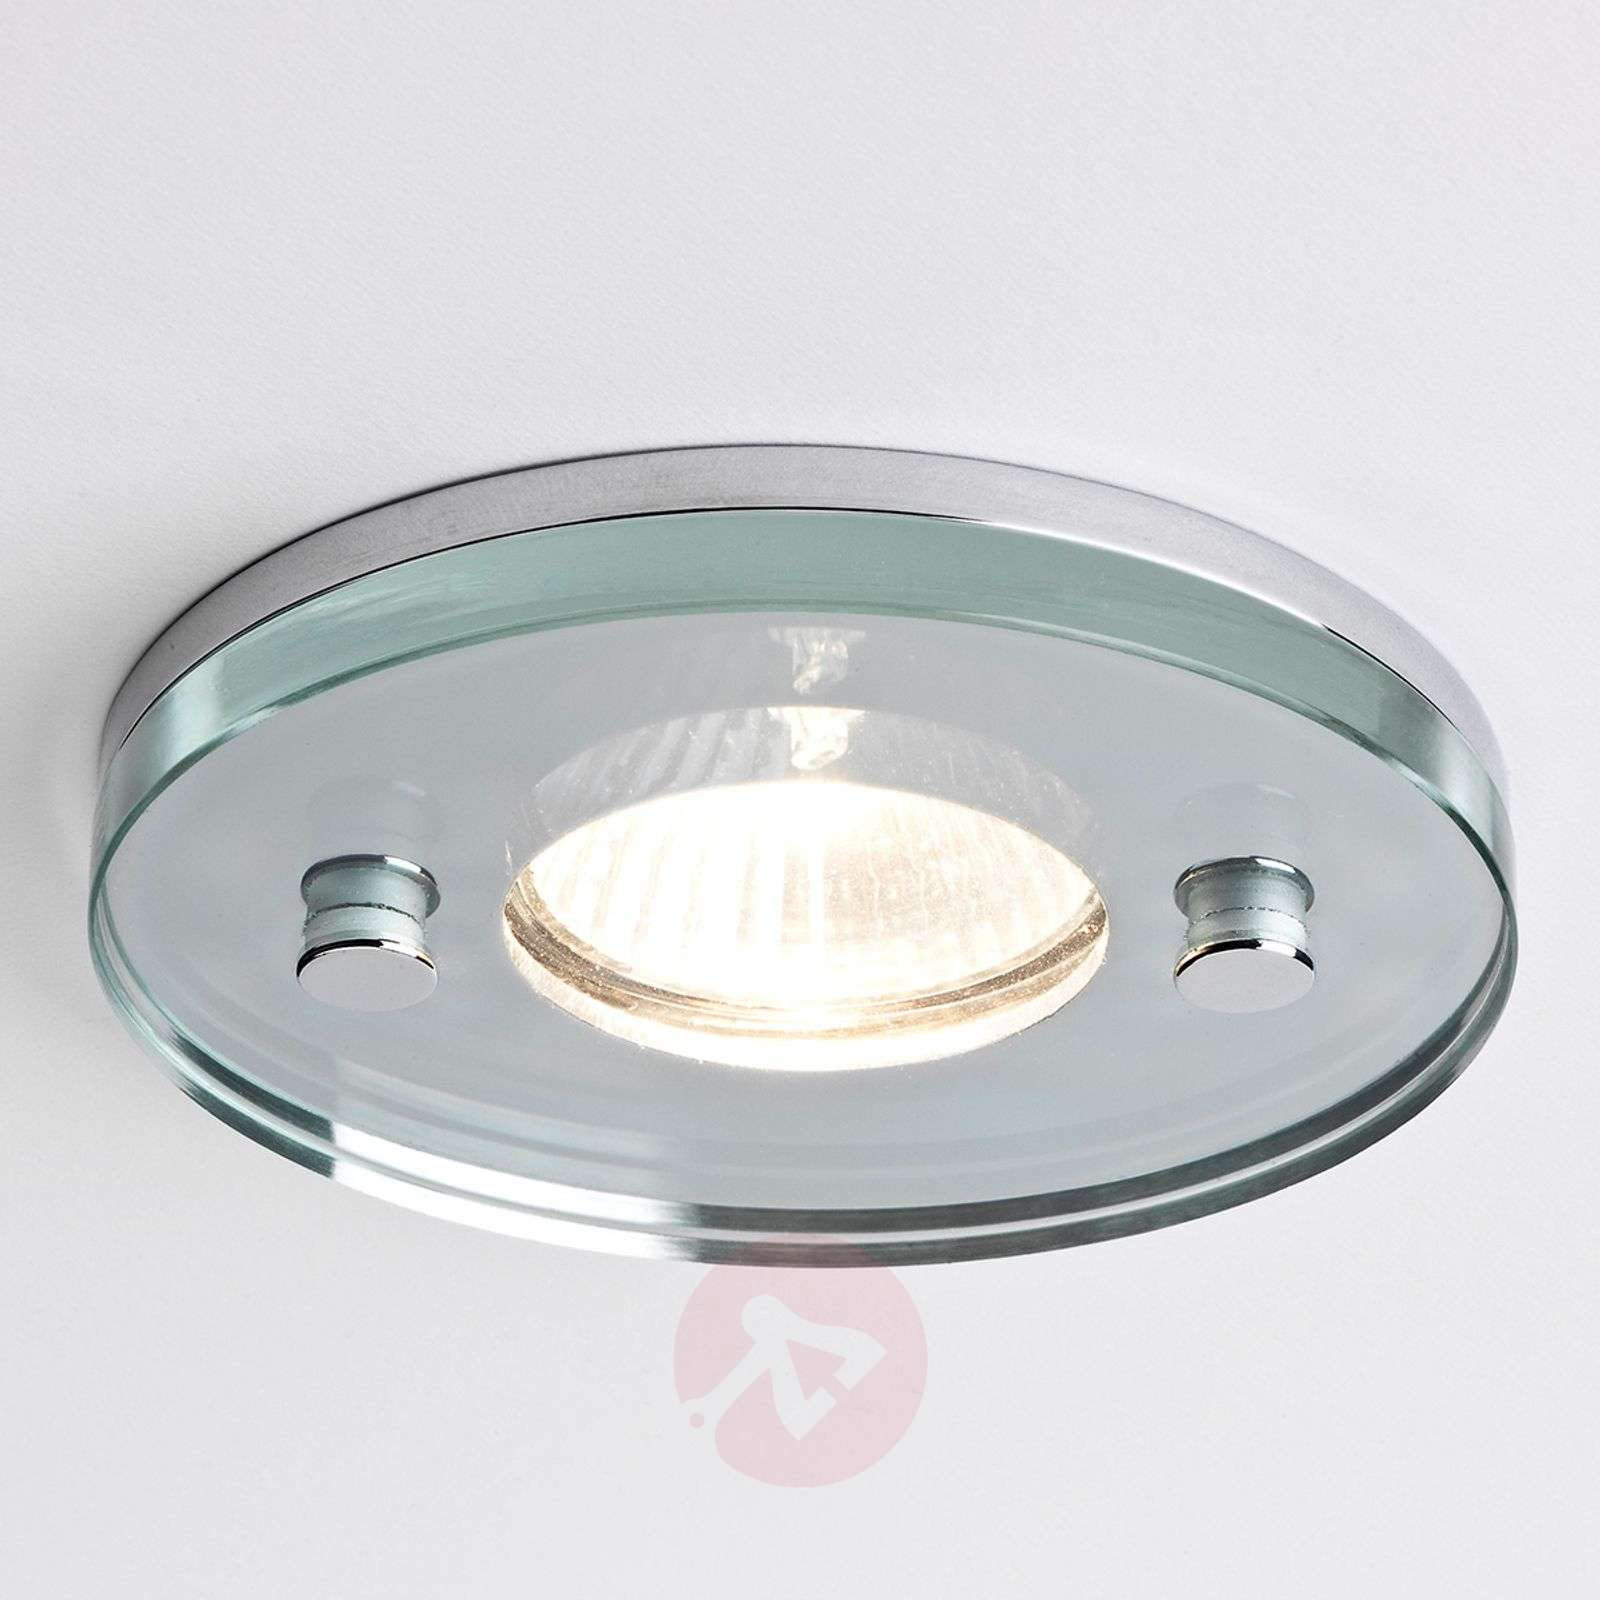 Ice Round Built-In Ceiling Light Attractive-1020106-03